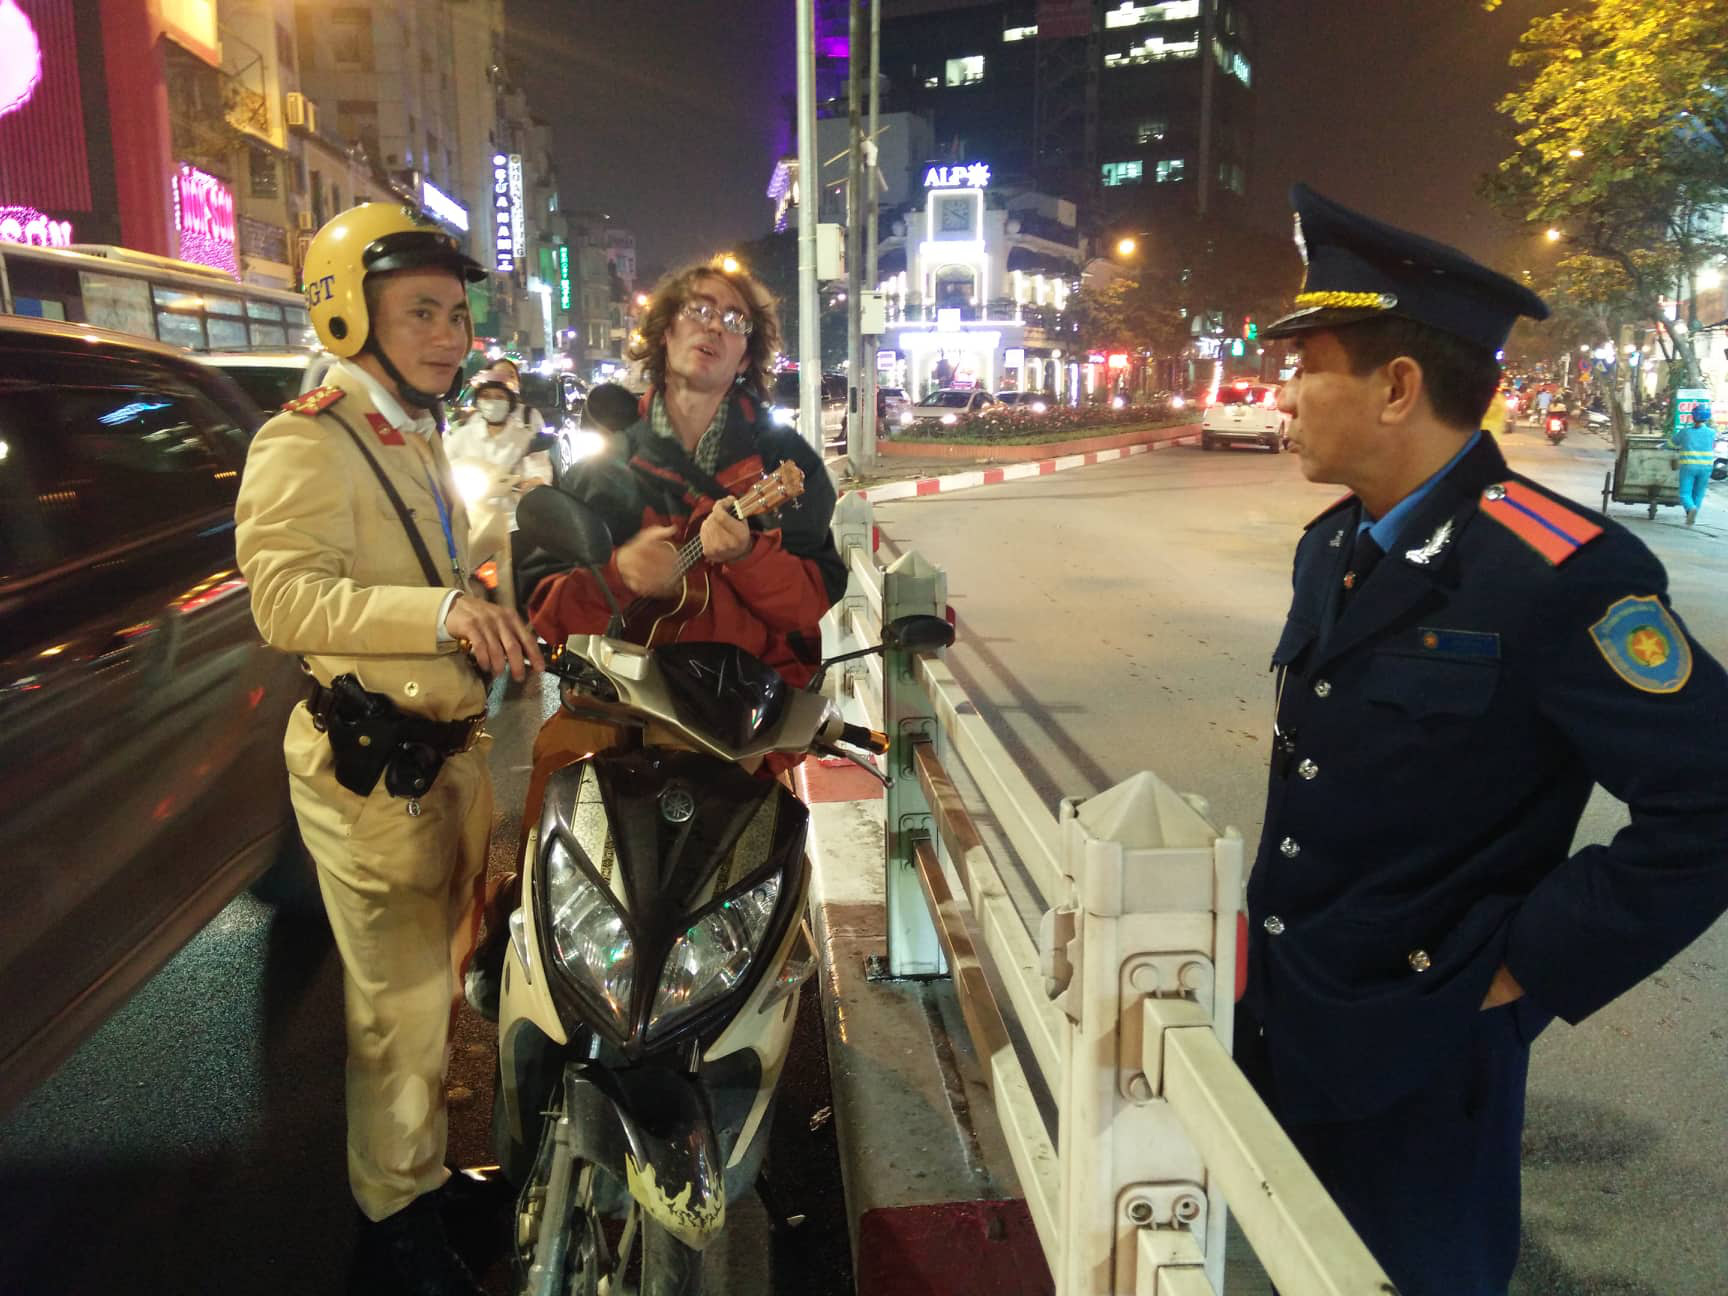 Russian man plays ukulele after pulled over by traffic police in Hanoi